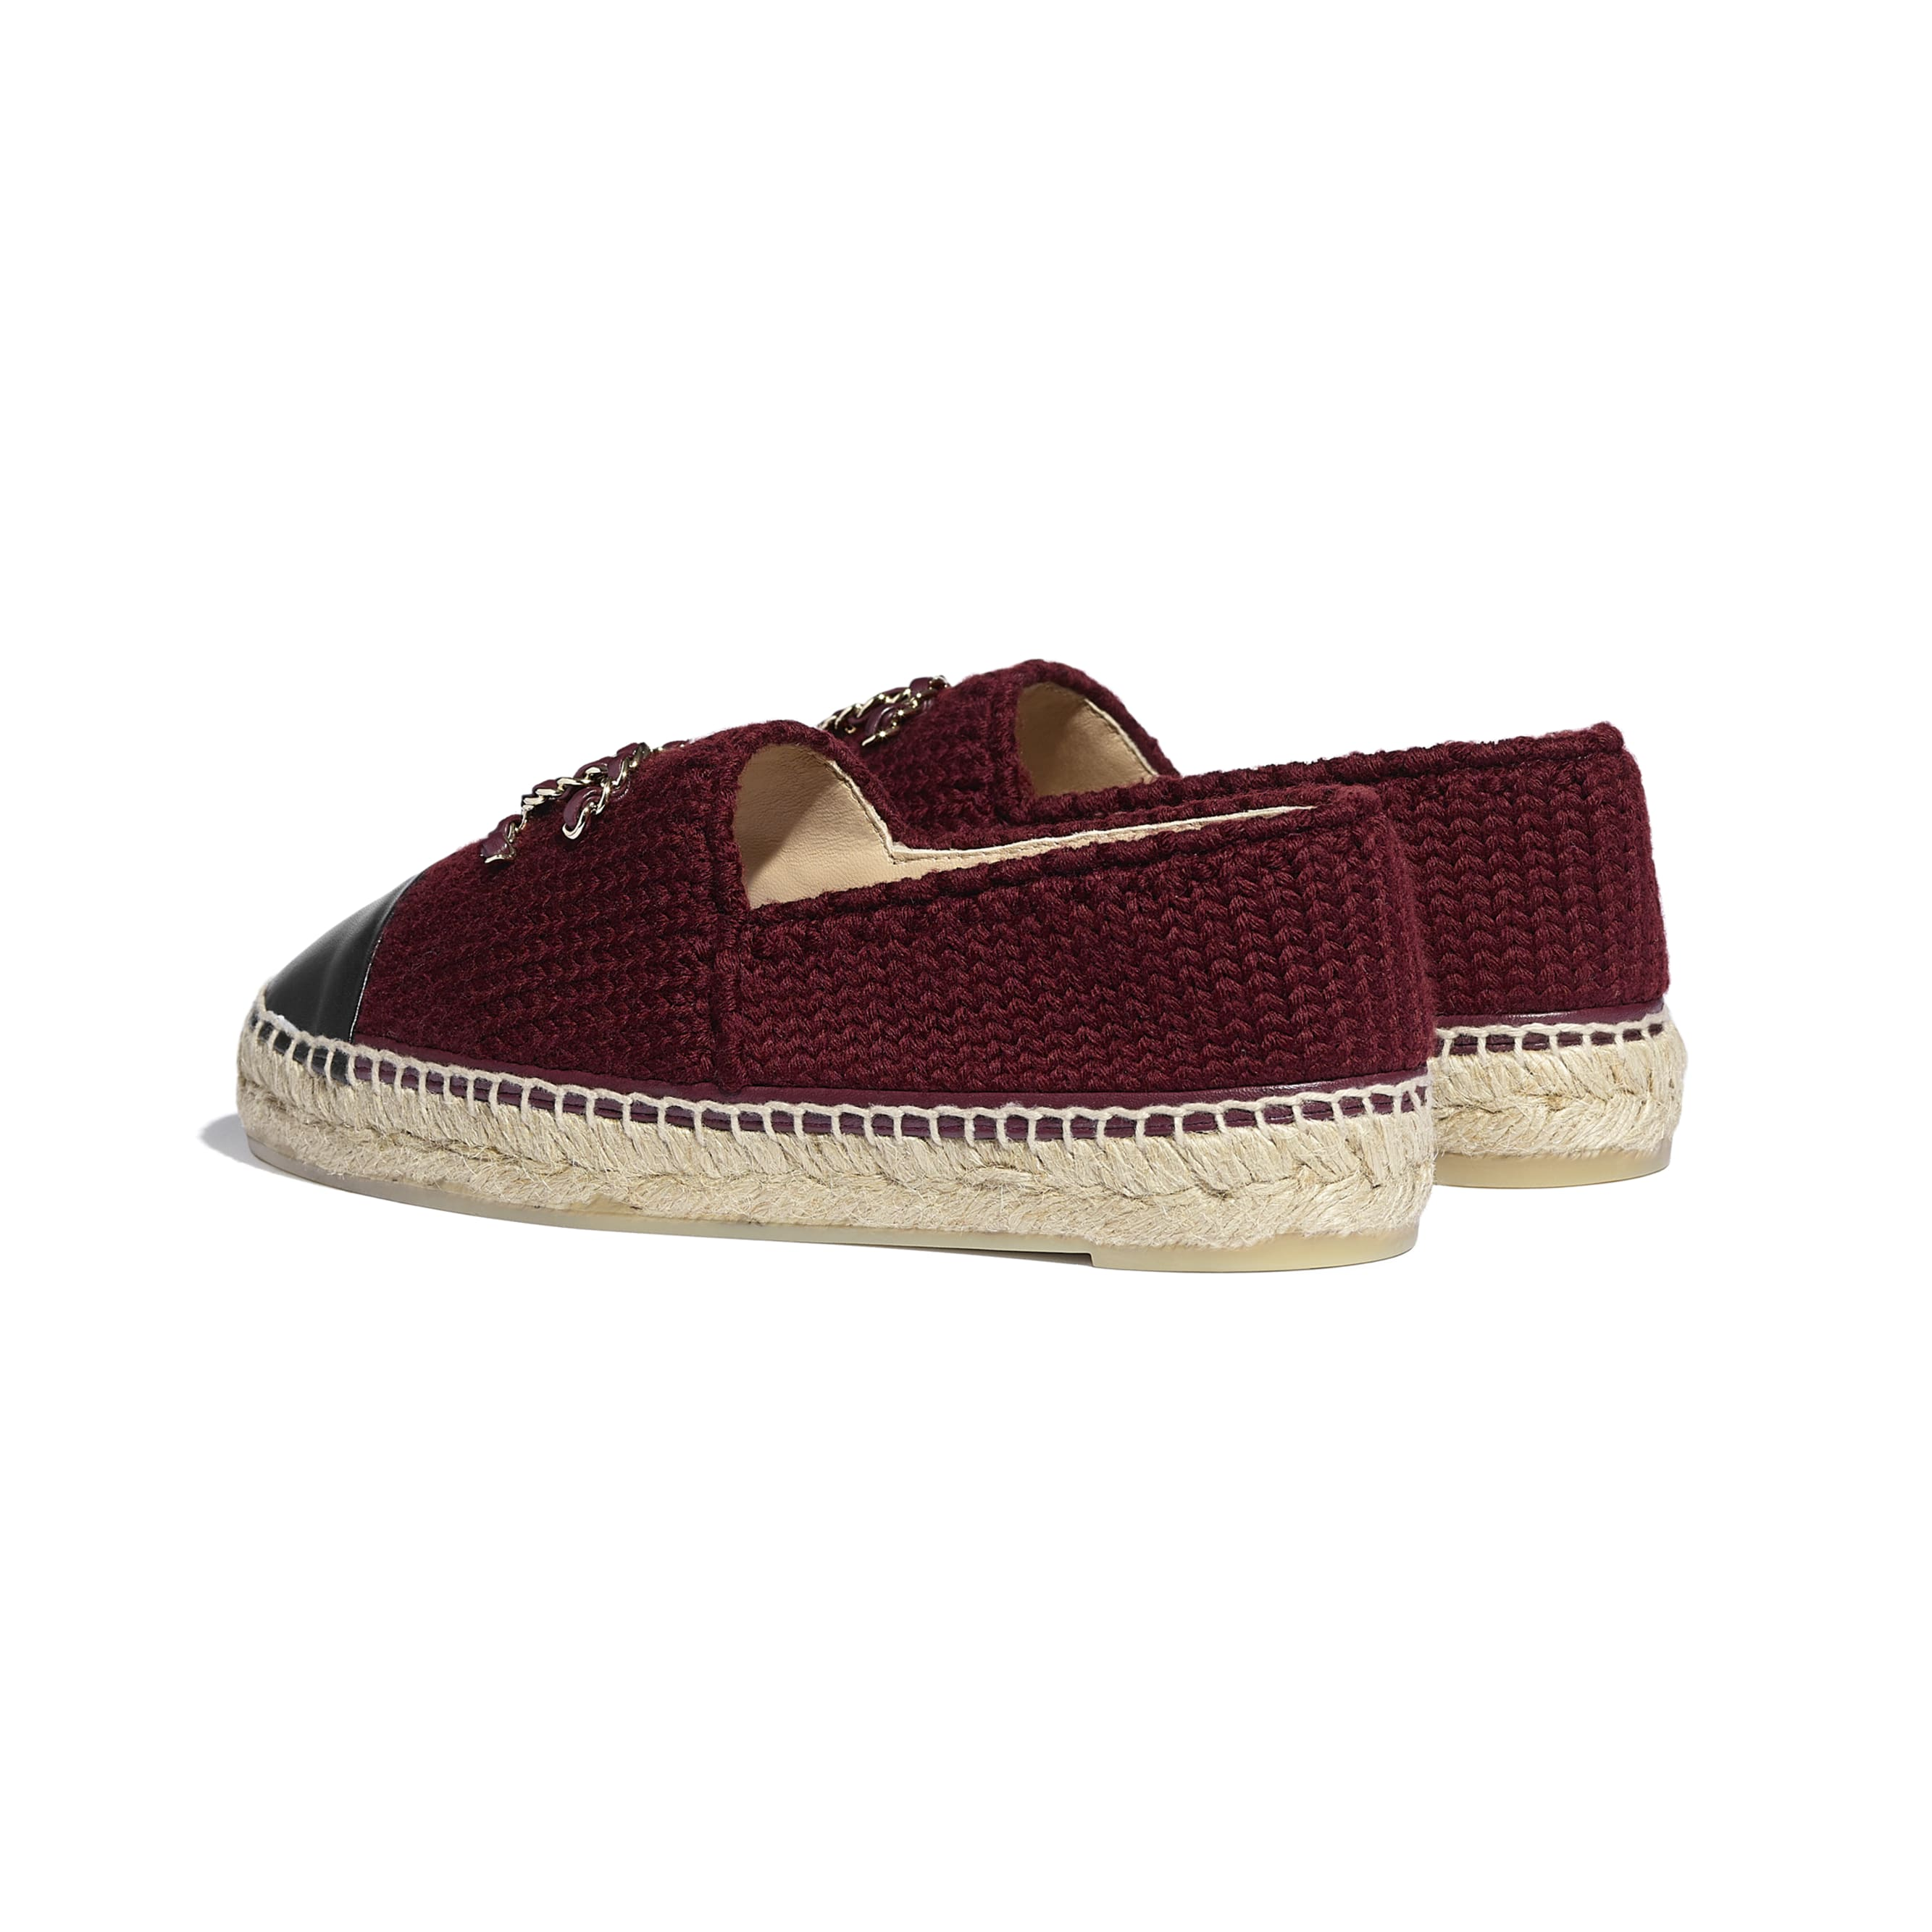 Espadrilles - Burgundy & Black - Knitted Wool & Lambskin - CHANEL - Other view - see standard sized version